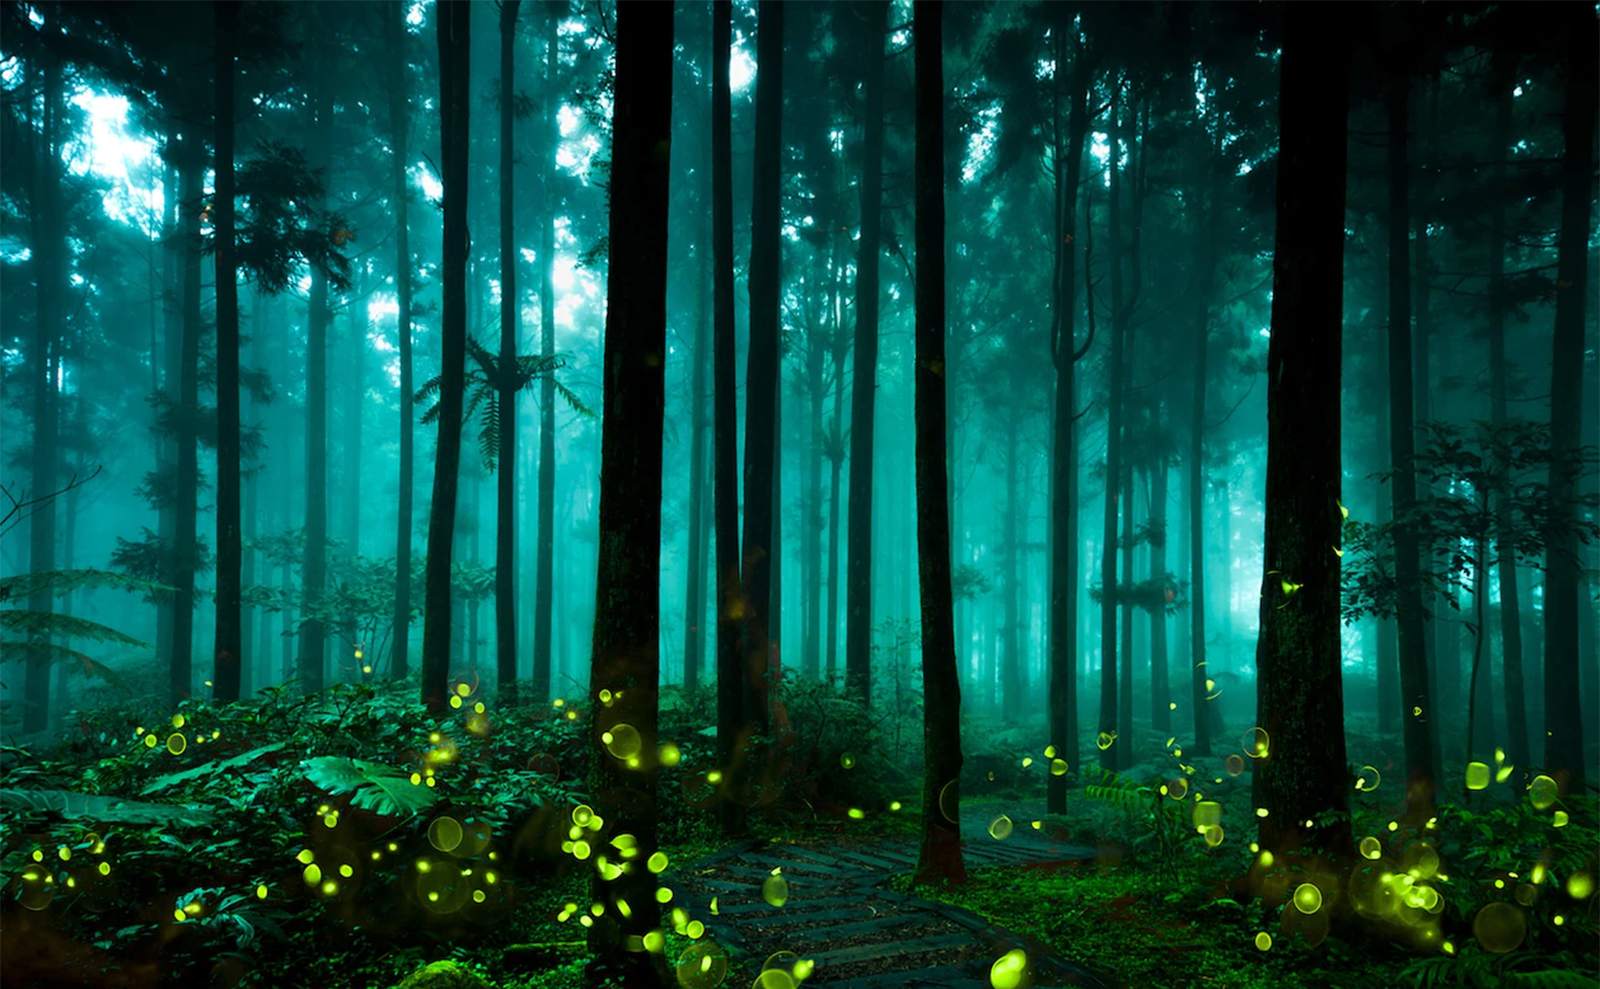 fireflies in the forest in taichung, taiwan